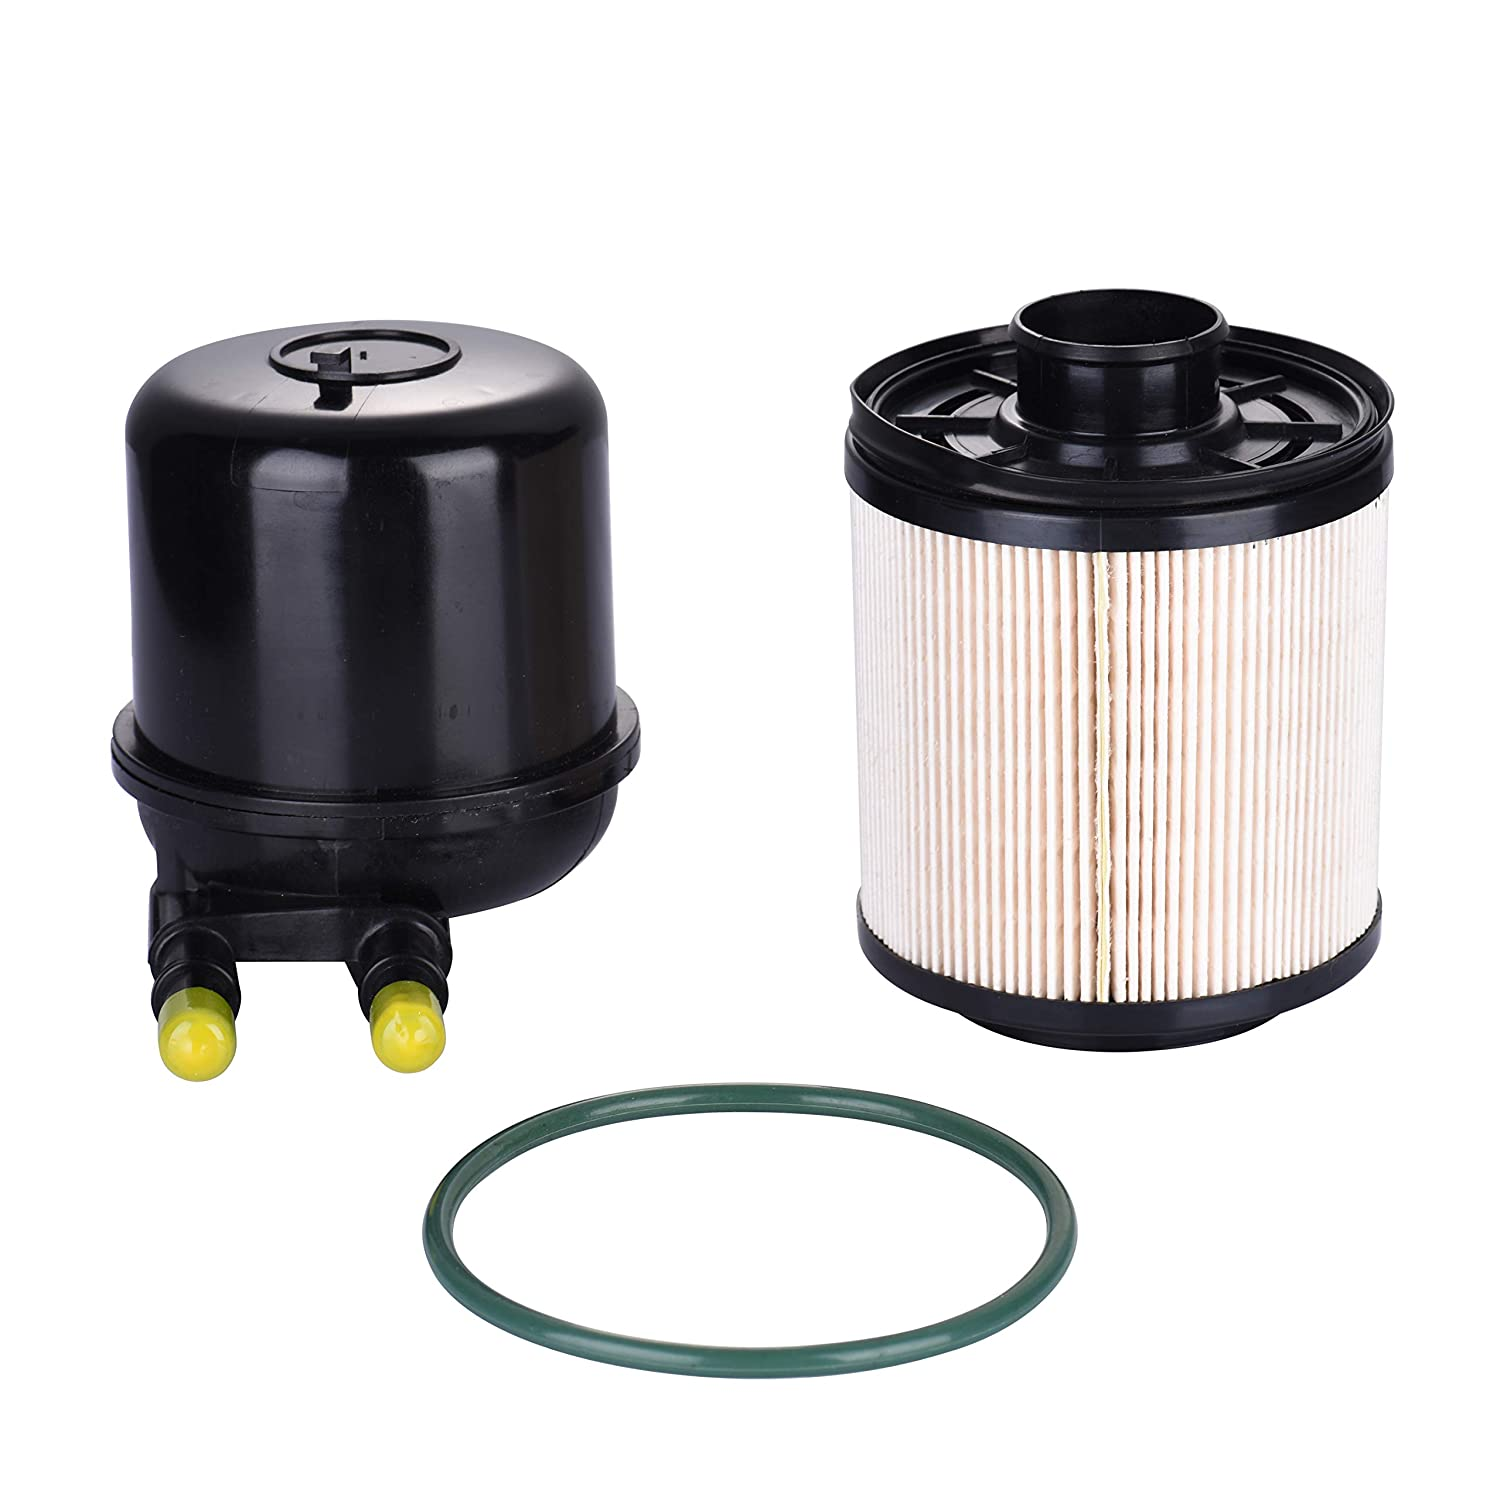 TOHUU FD4615 6.7 Liter Powerstroke Fuel Filters For F250 F350 F450 F550